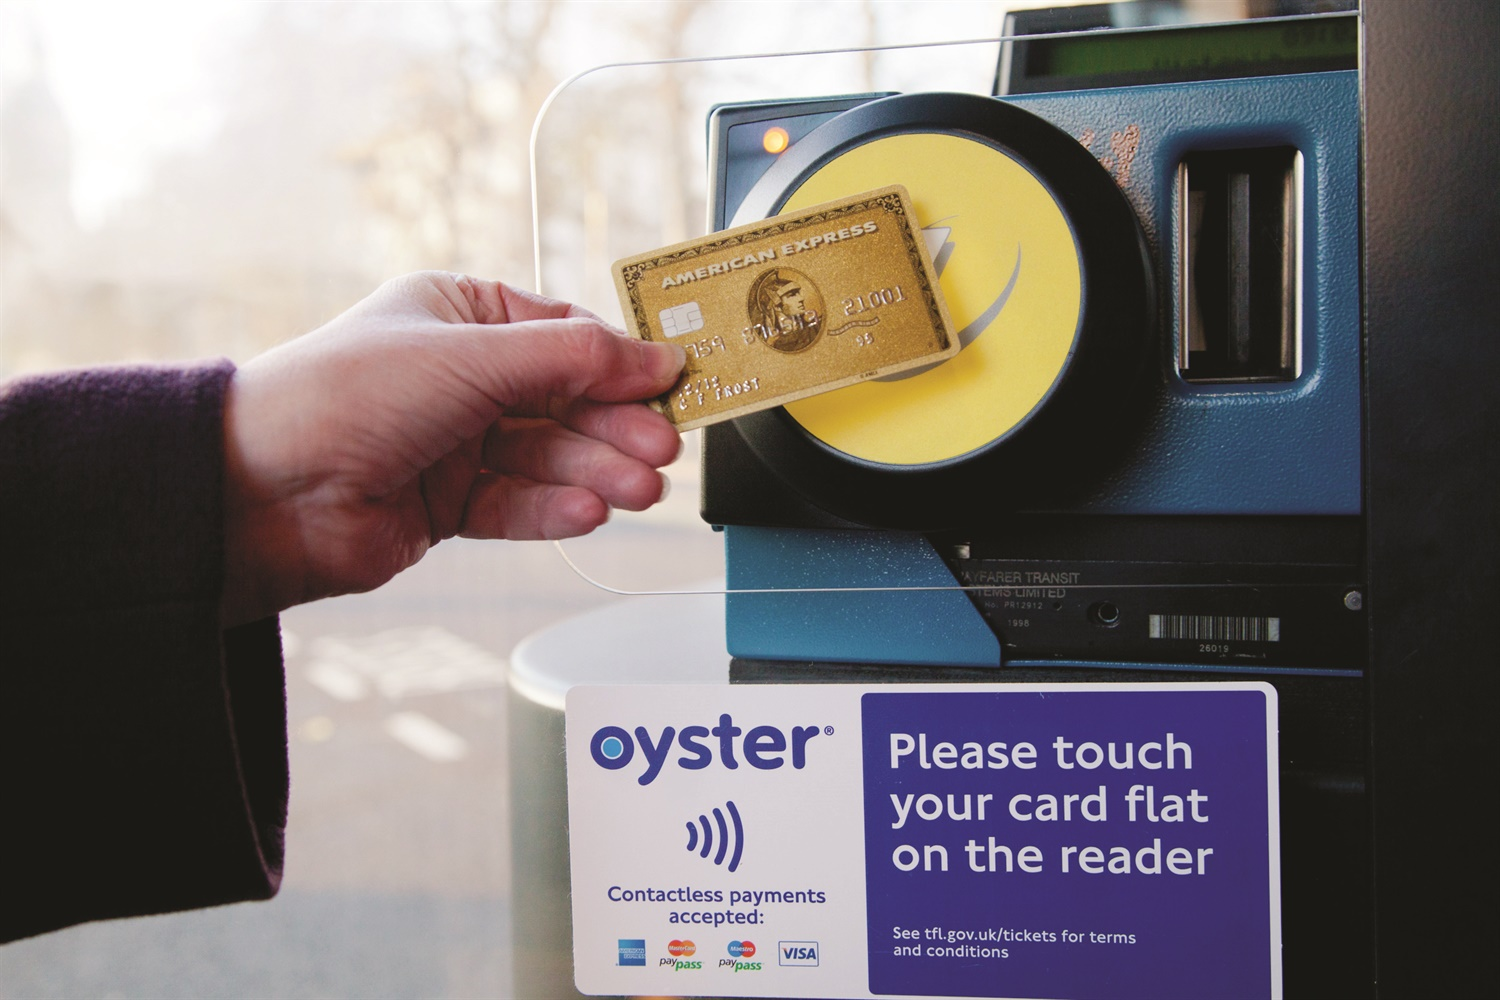 TfL named fastest growing contactless merchant in Europe